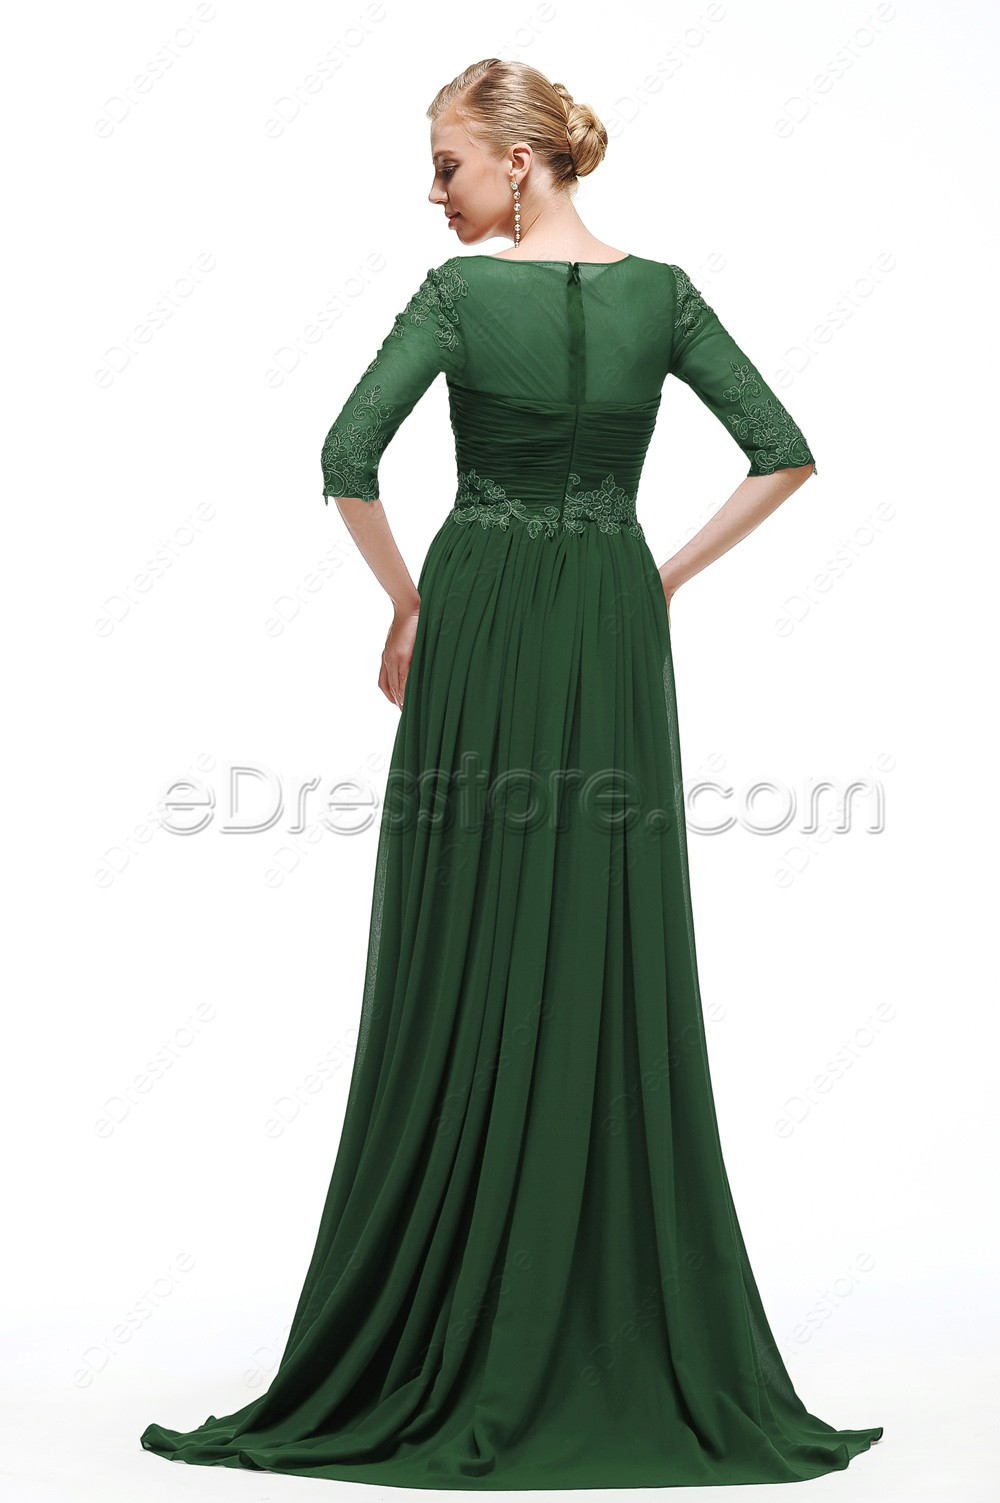 Forest Green Modest Bridesmaid Dresses with Sleeves